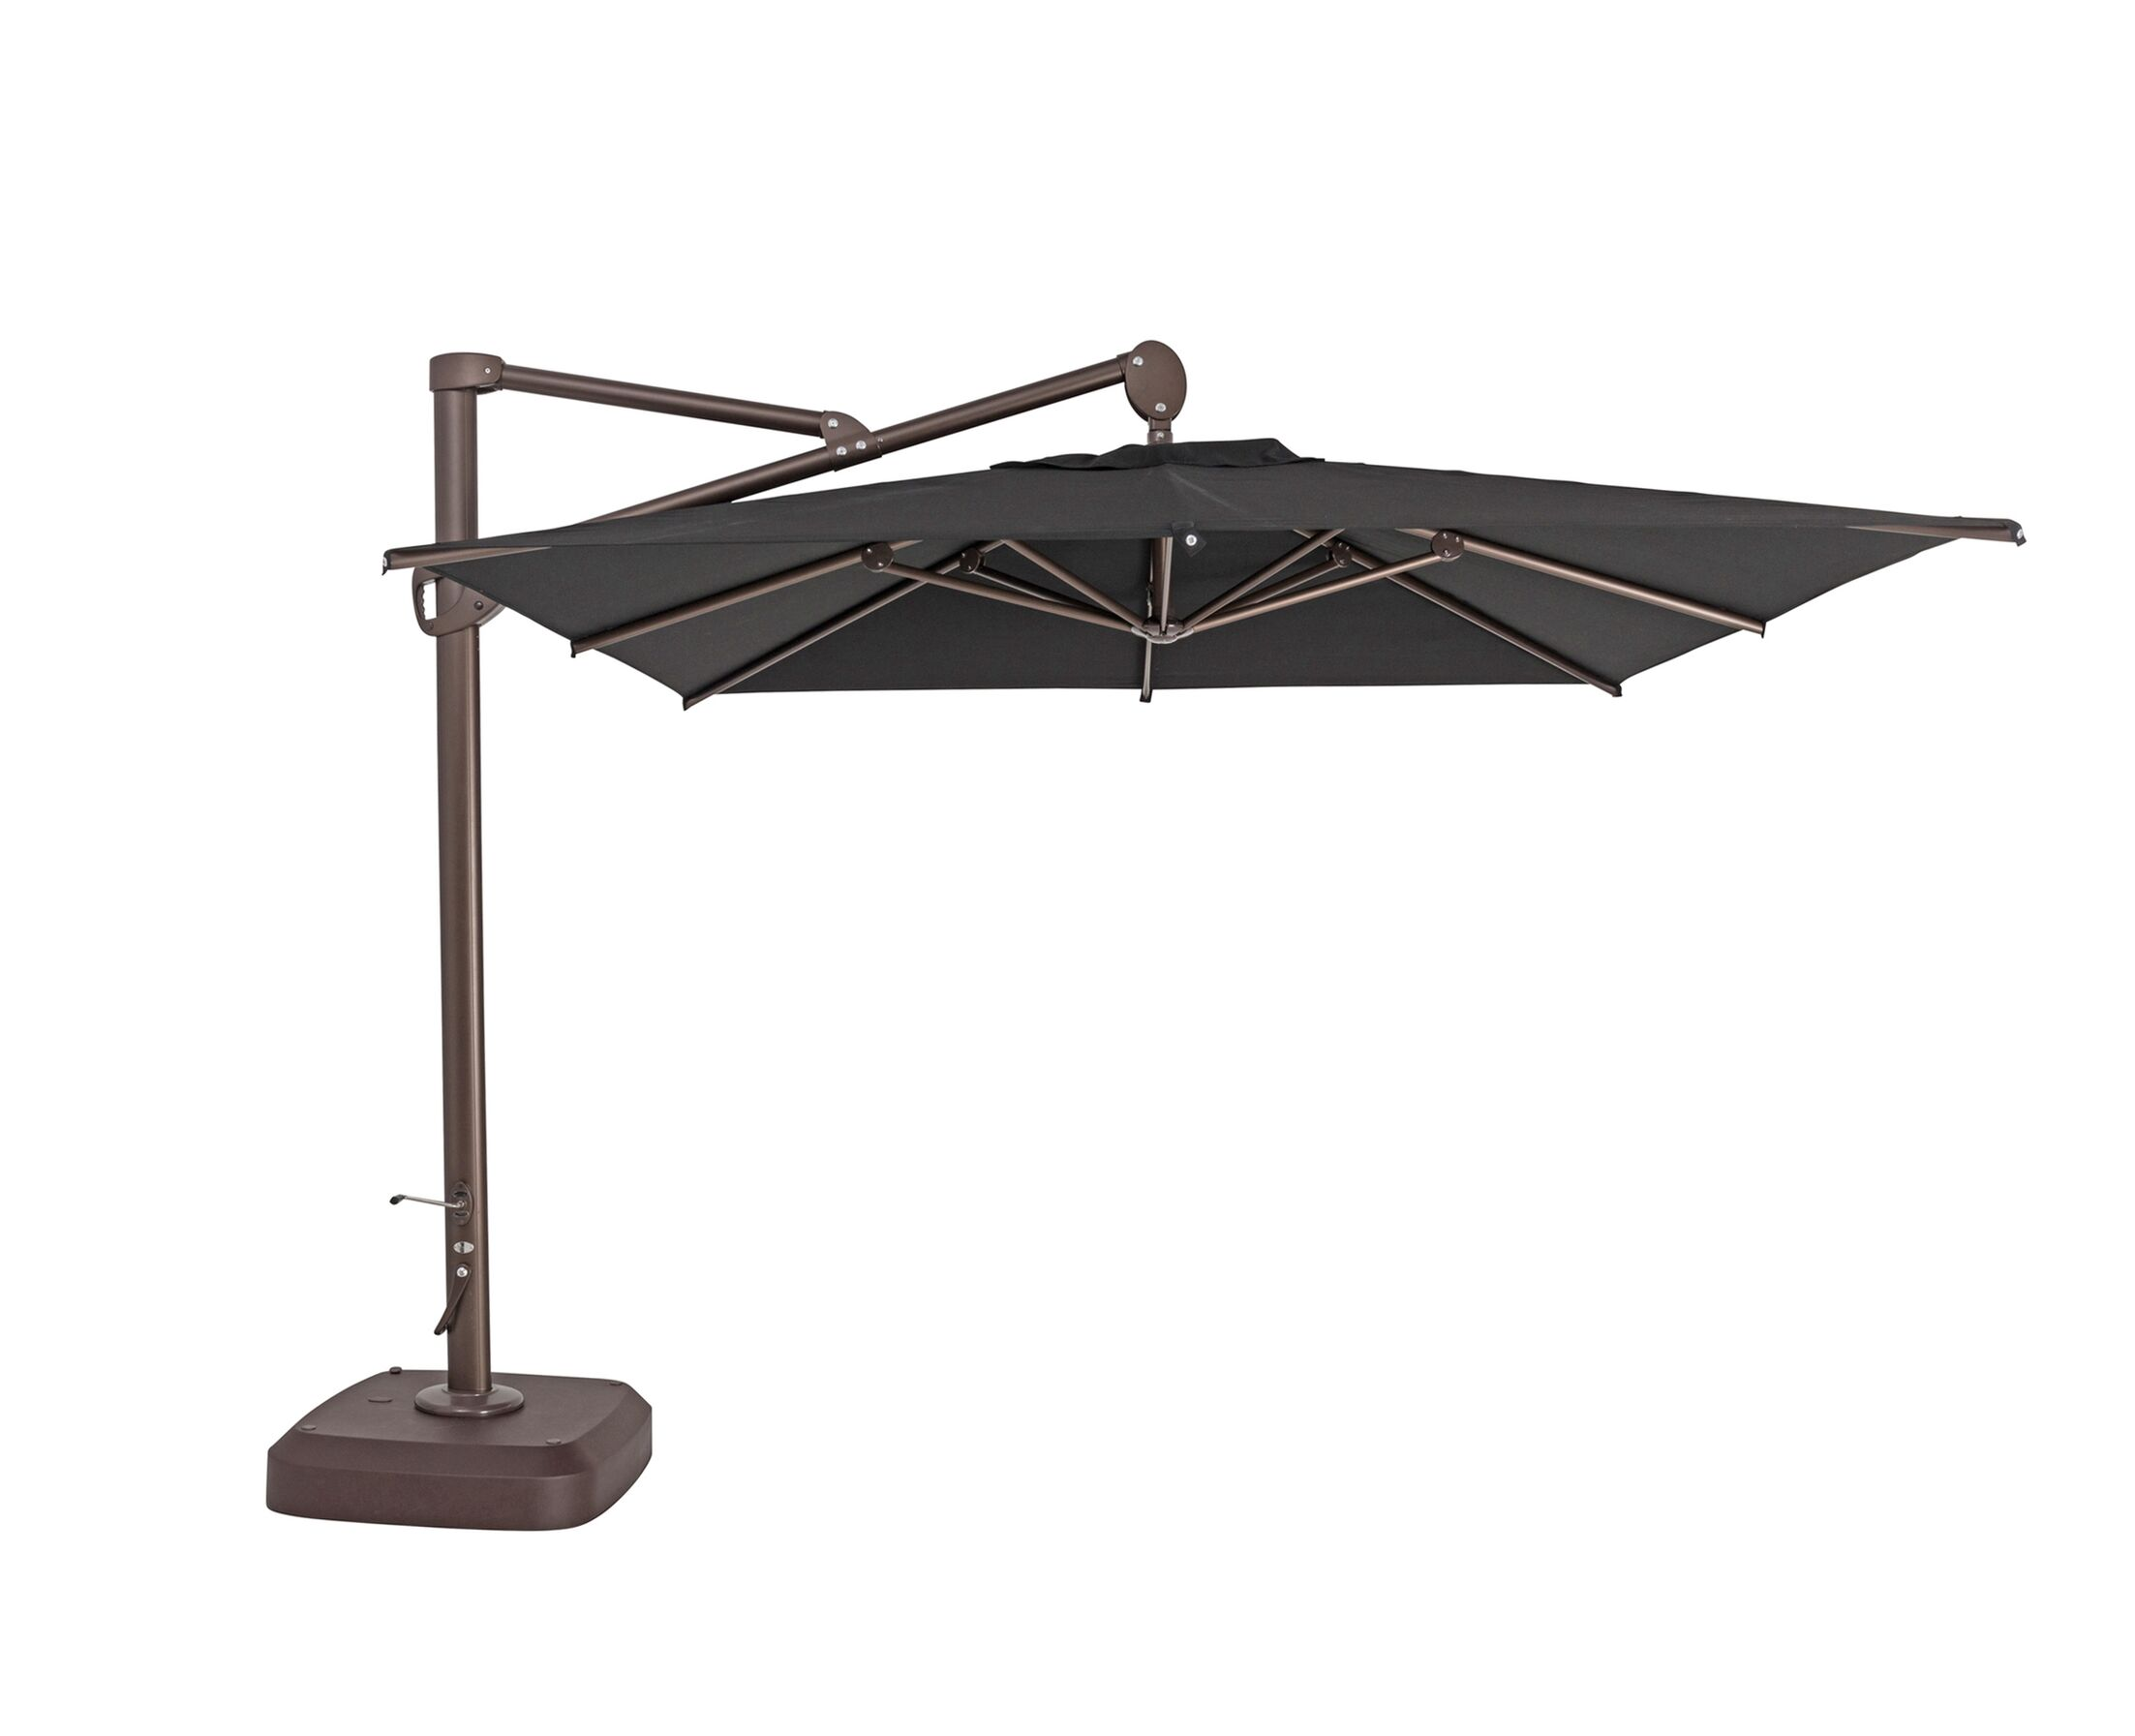 10' Square Cantilever Umbrella Color: Black